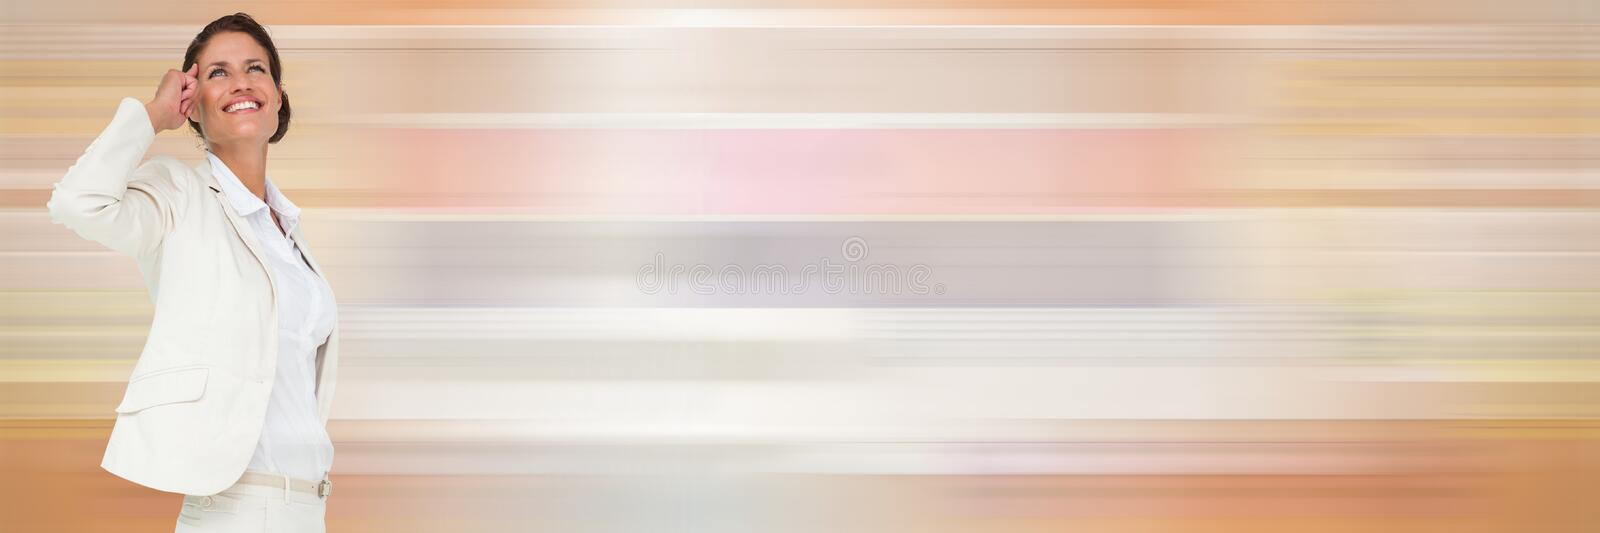 Thinking woman with soft colors transition royalty free stock photo